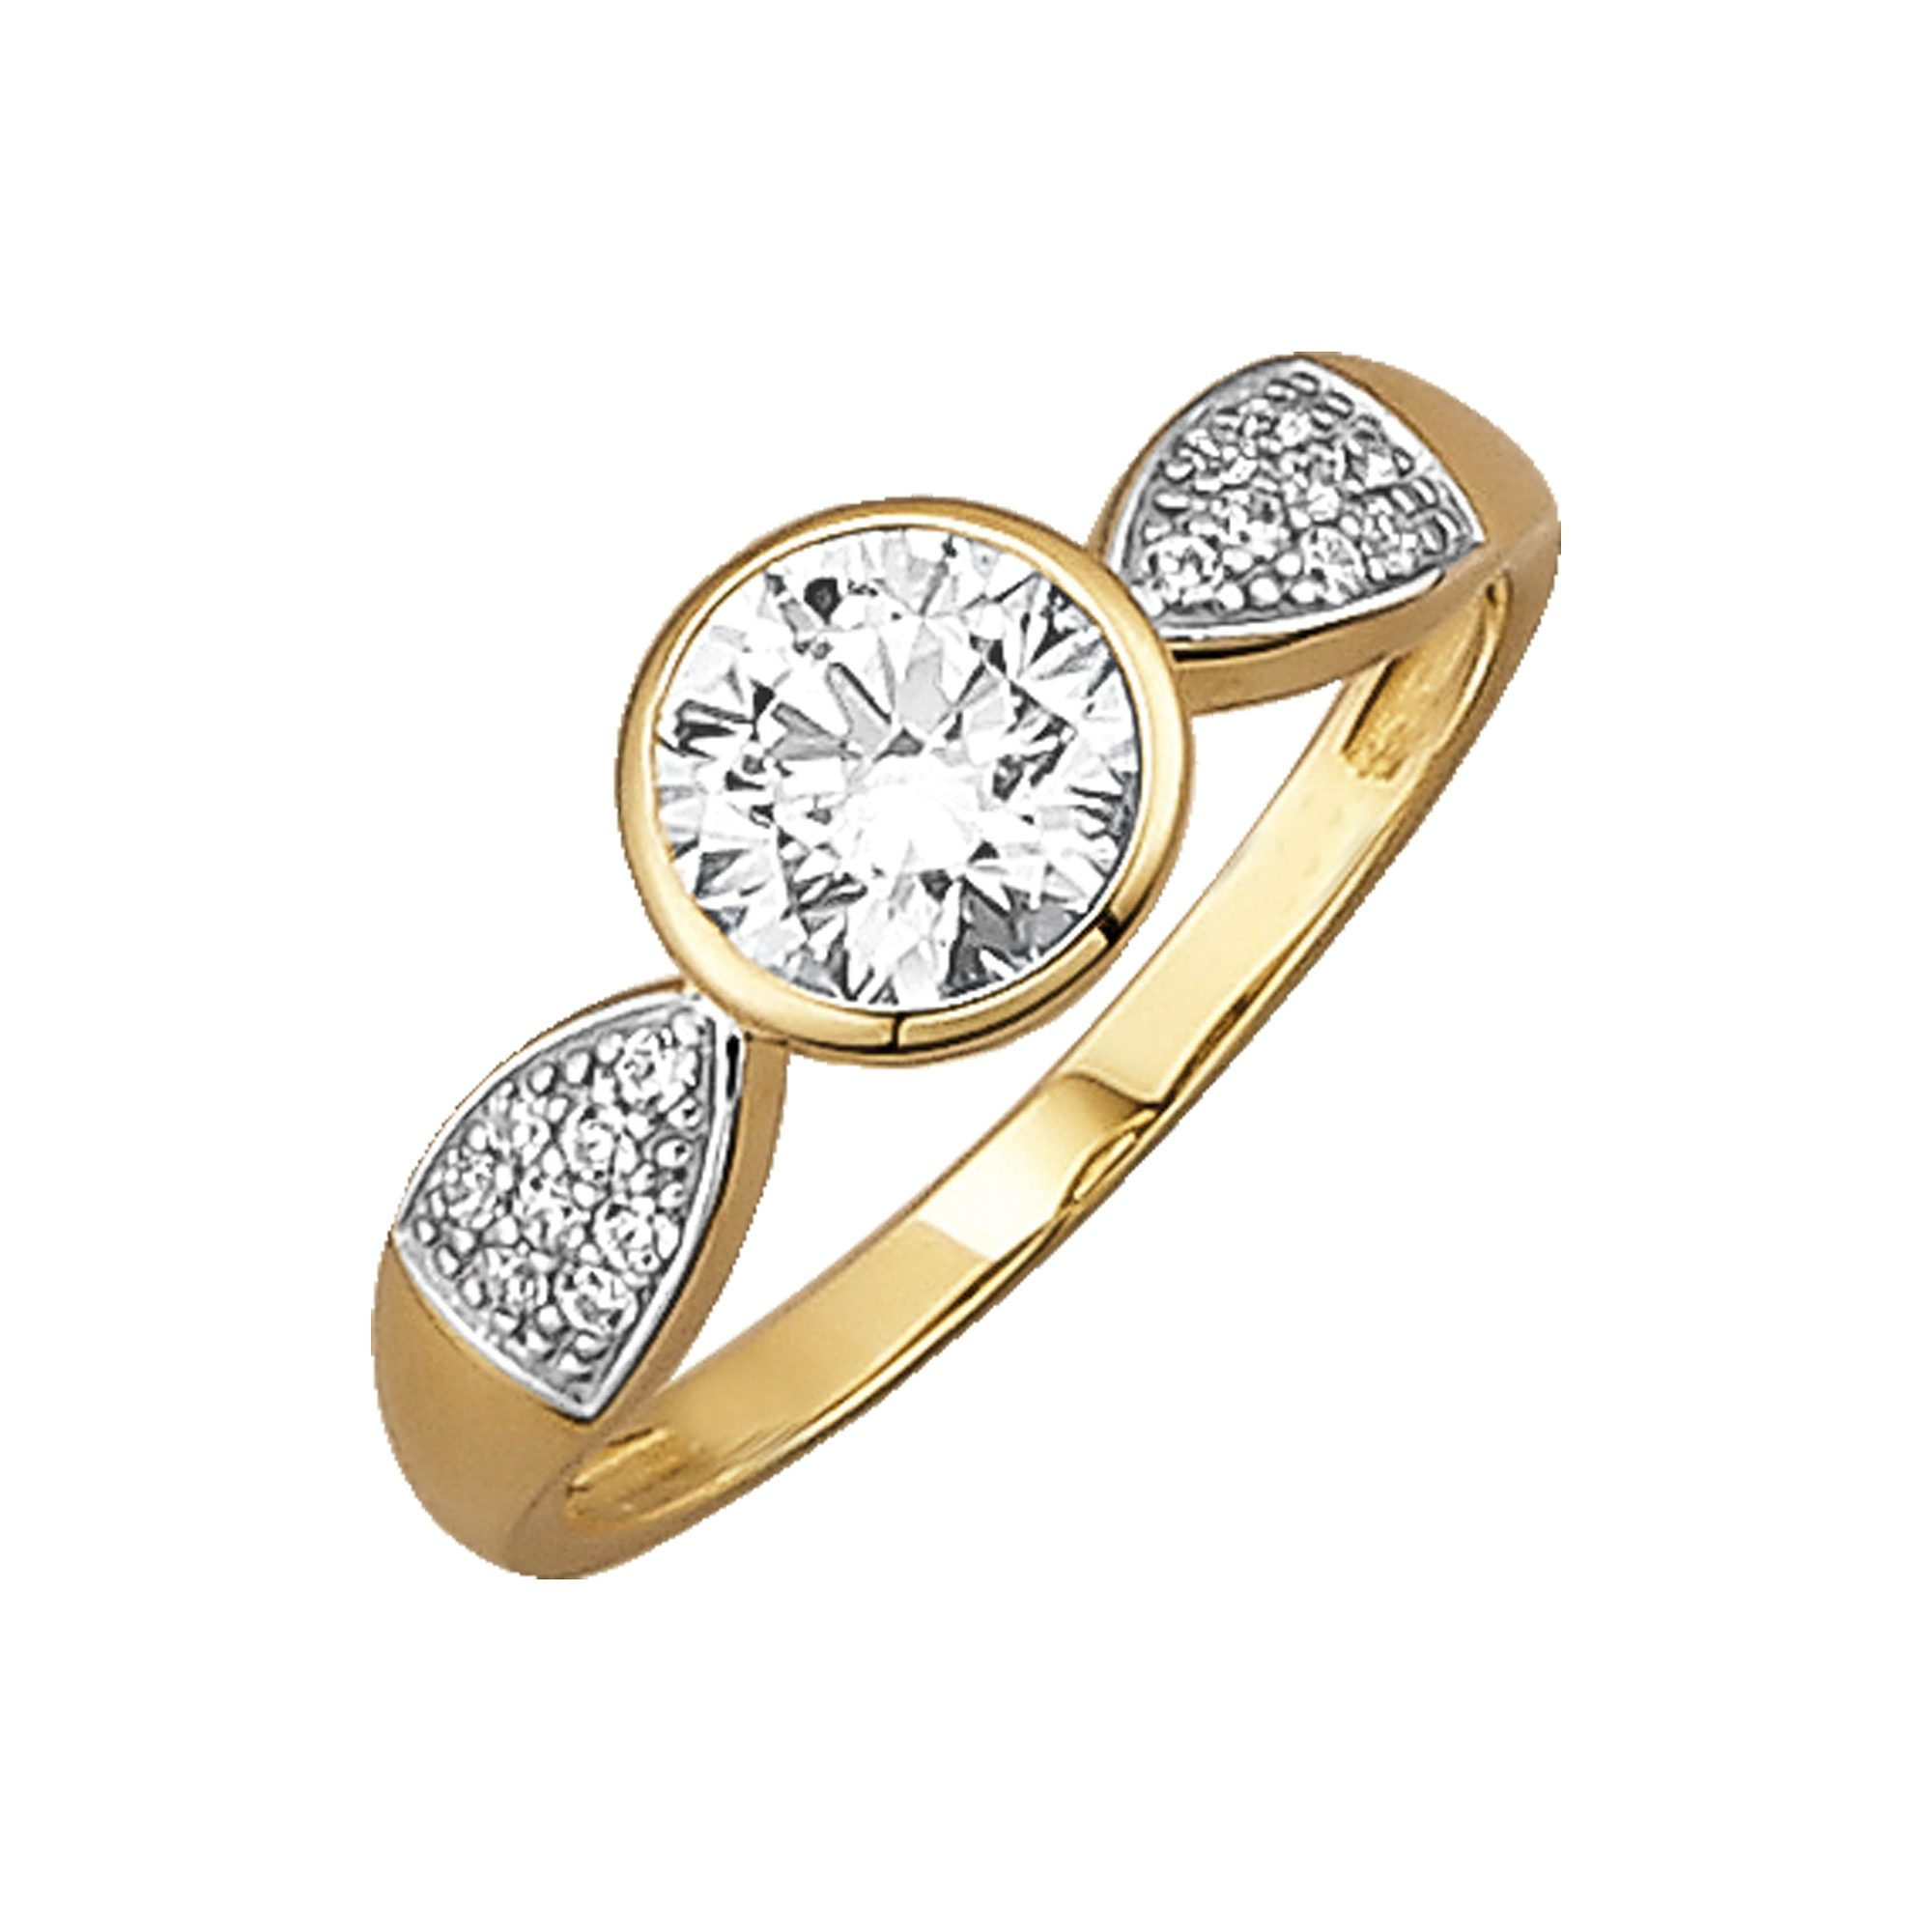 Jacques Lemans Ring 375 Gold online kaufen  OTTO